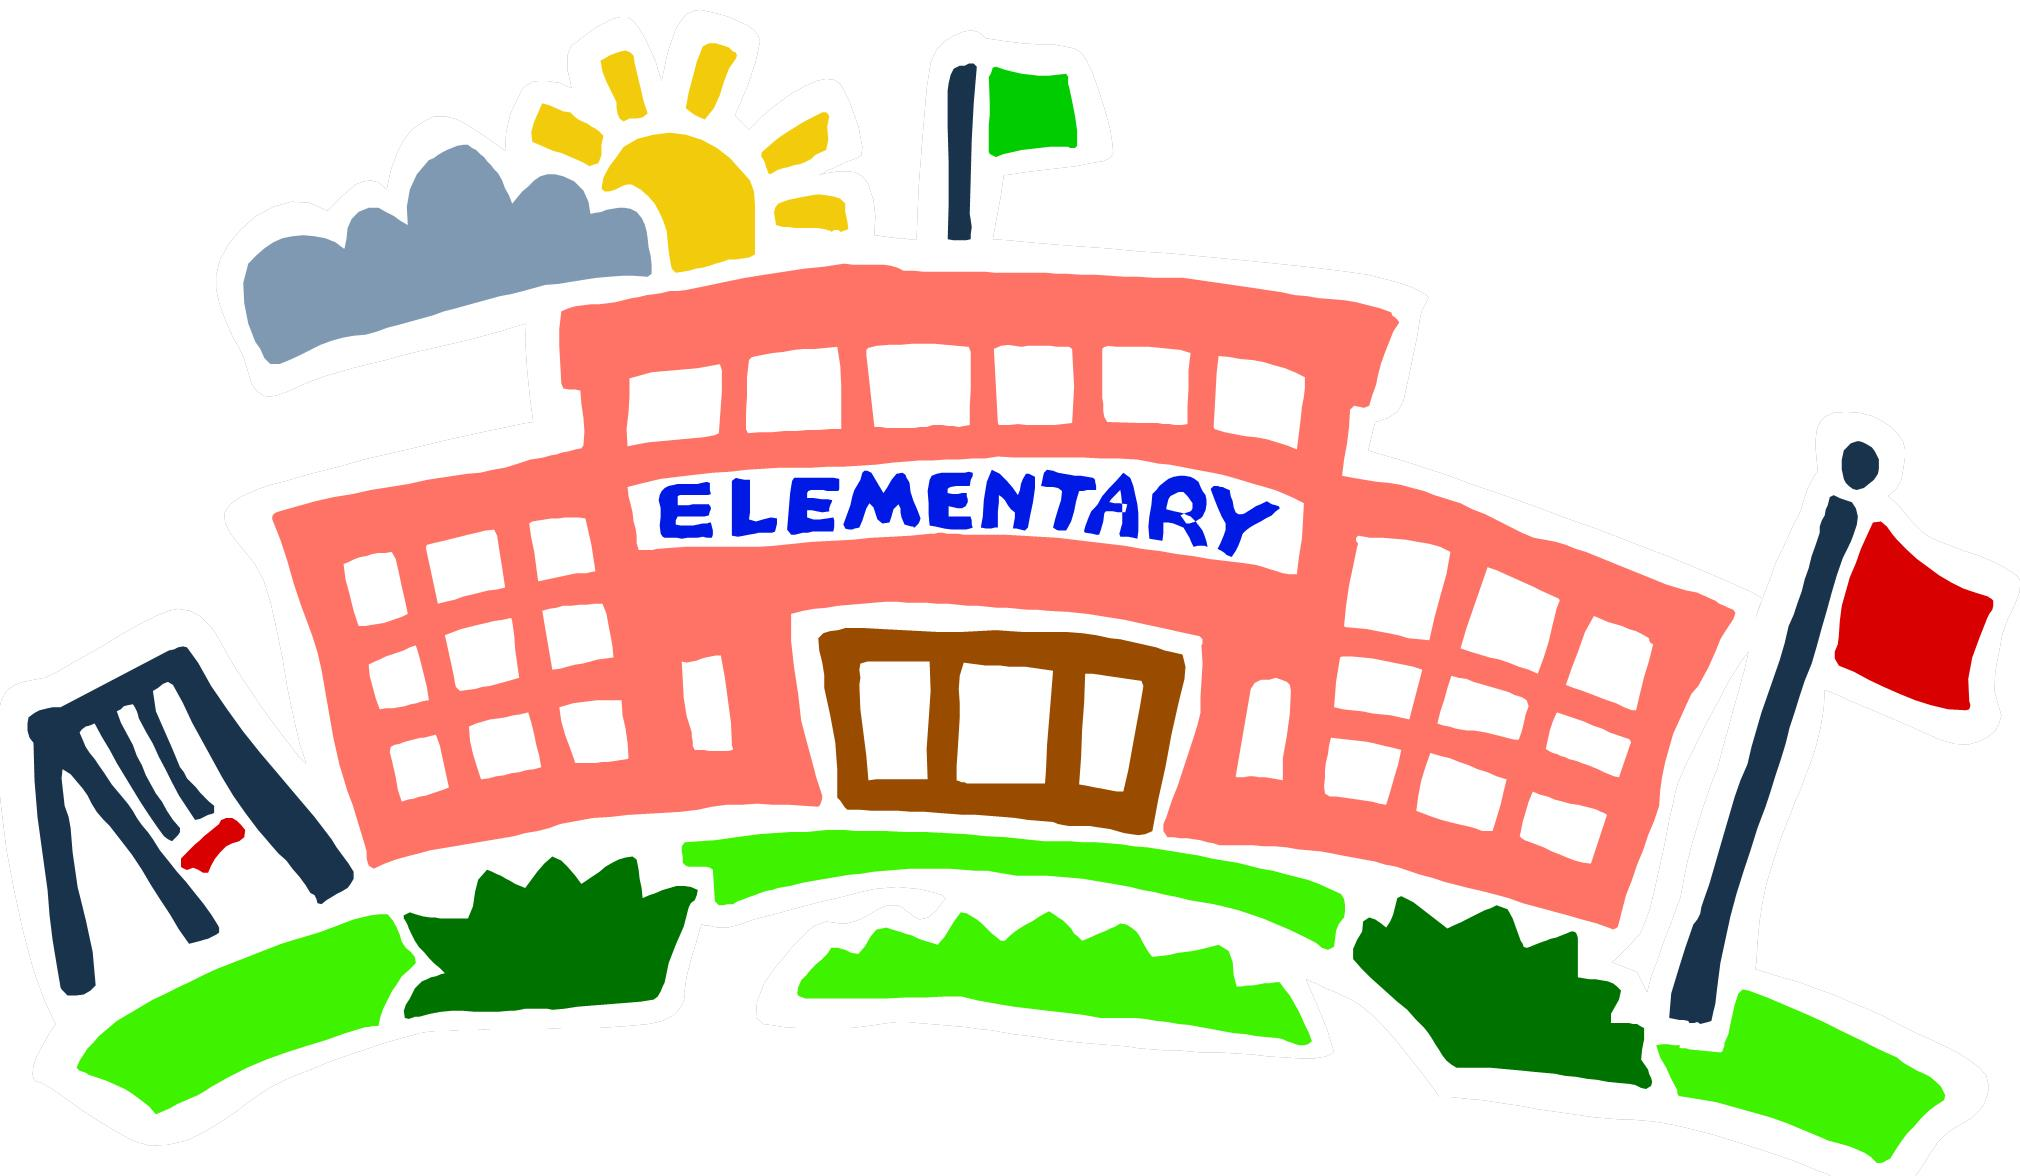 School Clip Art Photos-school clip art photos-10